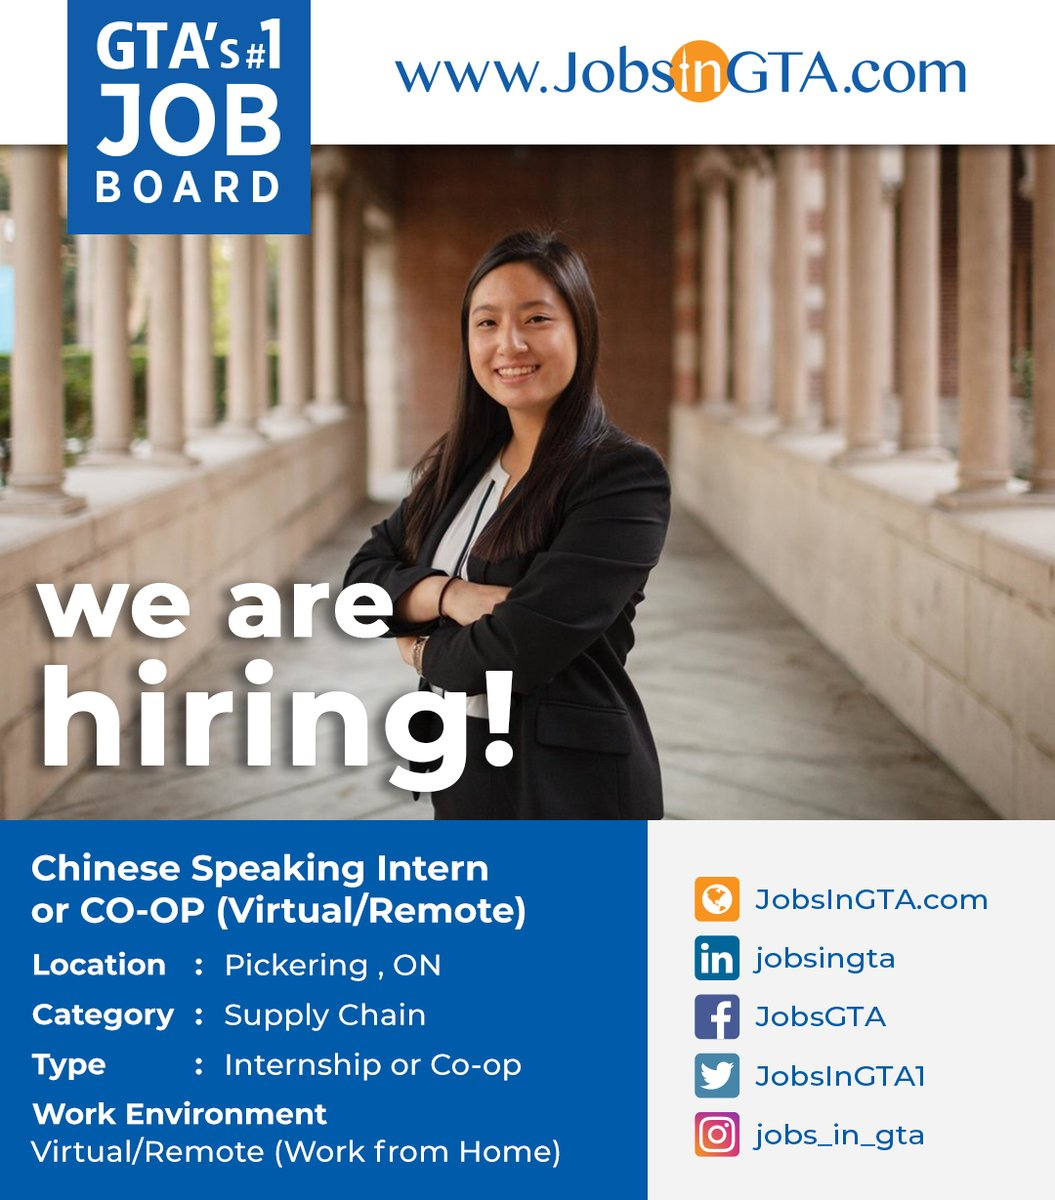 We're hiring ! We're looking for Chinese Speaking Intern or CO-OP (Virtual/Remote)  Apply: https://t.co/xmLSHhLx4T  #JobsInGTA #WorkFromHome #RemoteJobs #VirtualWork  #SupplyChain #Hiring #jobs #TorontoJobs #StayHome #StaySafe #MondayMotivation  #Ontario #GTA #Pickering #Canada https://t.co/8C6WjcEham